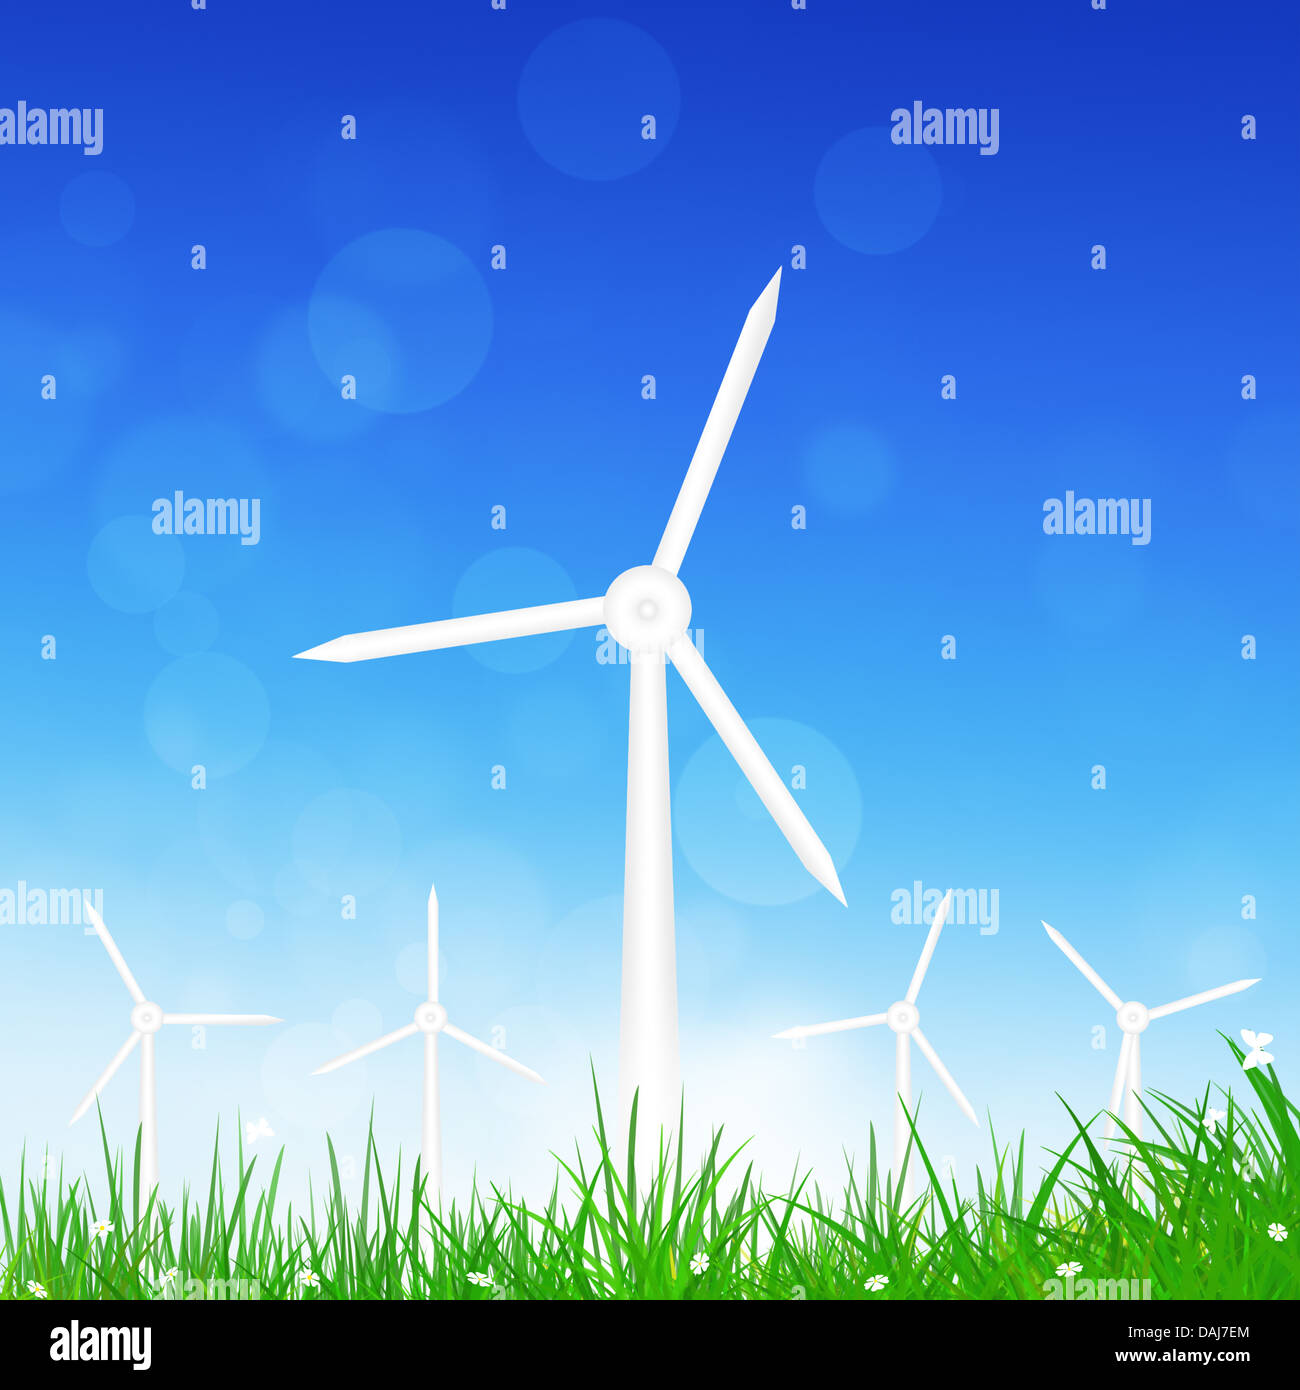 concept illustration of alternative energy taken by wind turbines - Stock Image